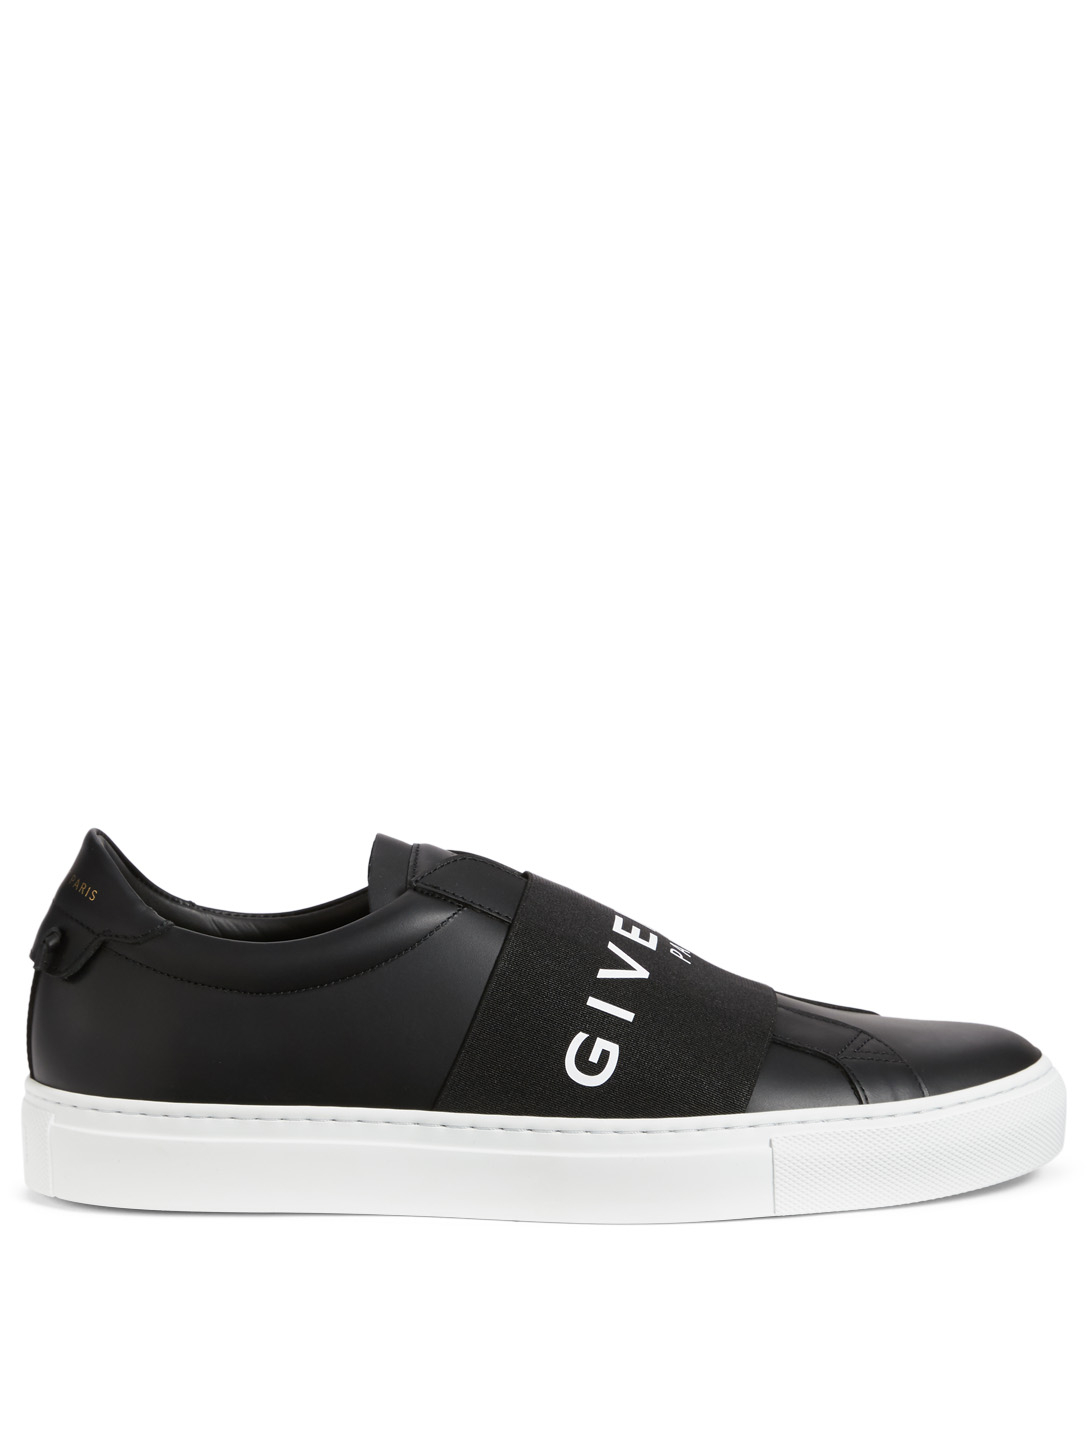 GIVENCHY Urban Street Leather Sneakers With Logo Strap Men's Black